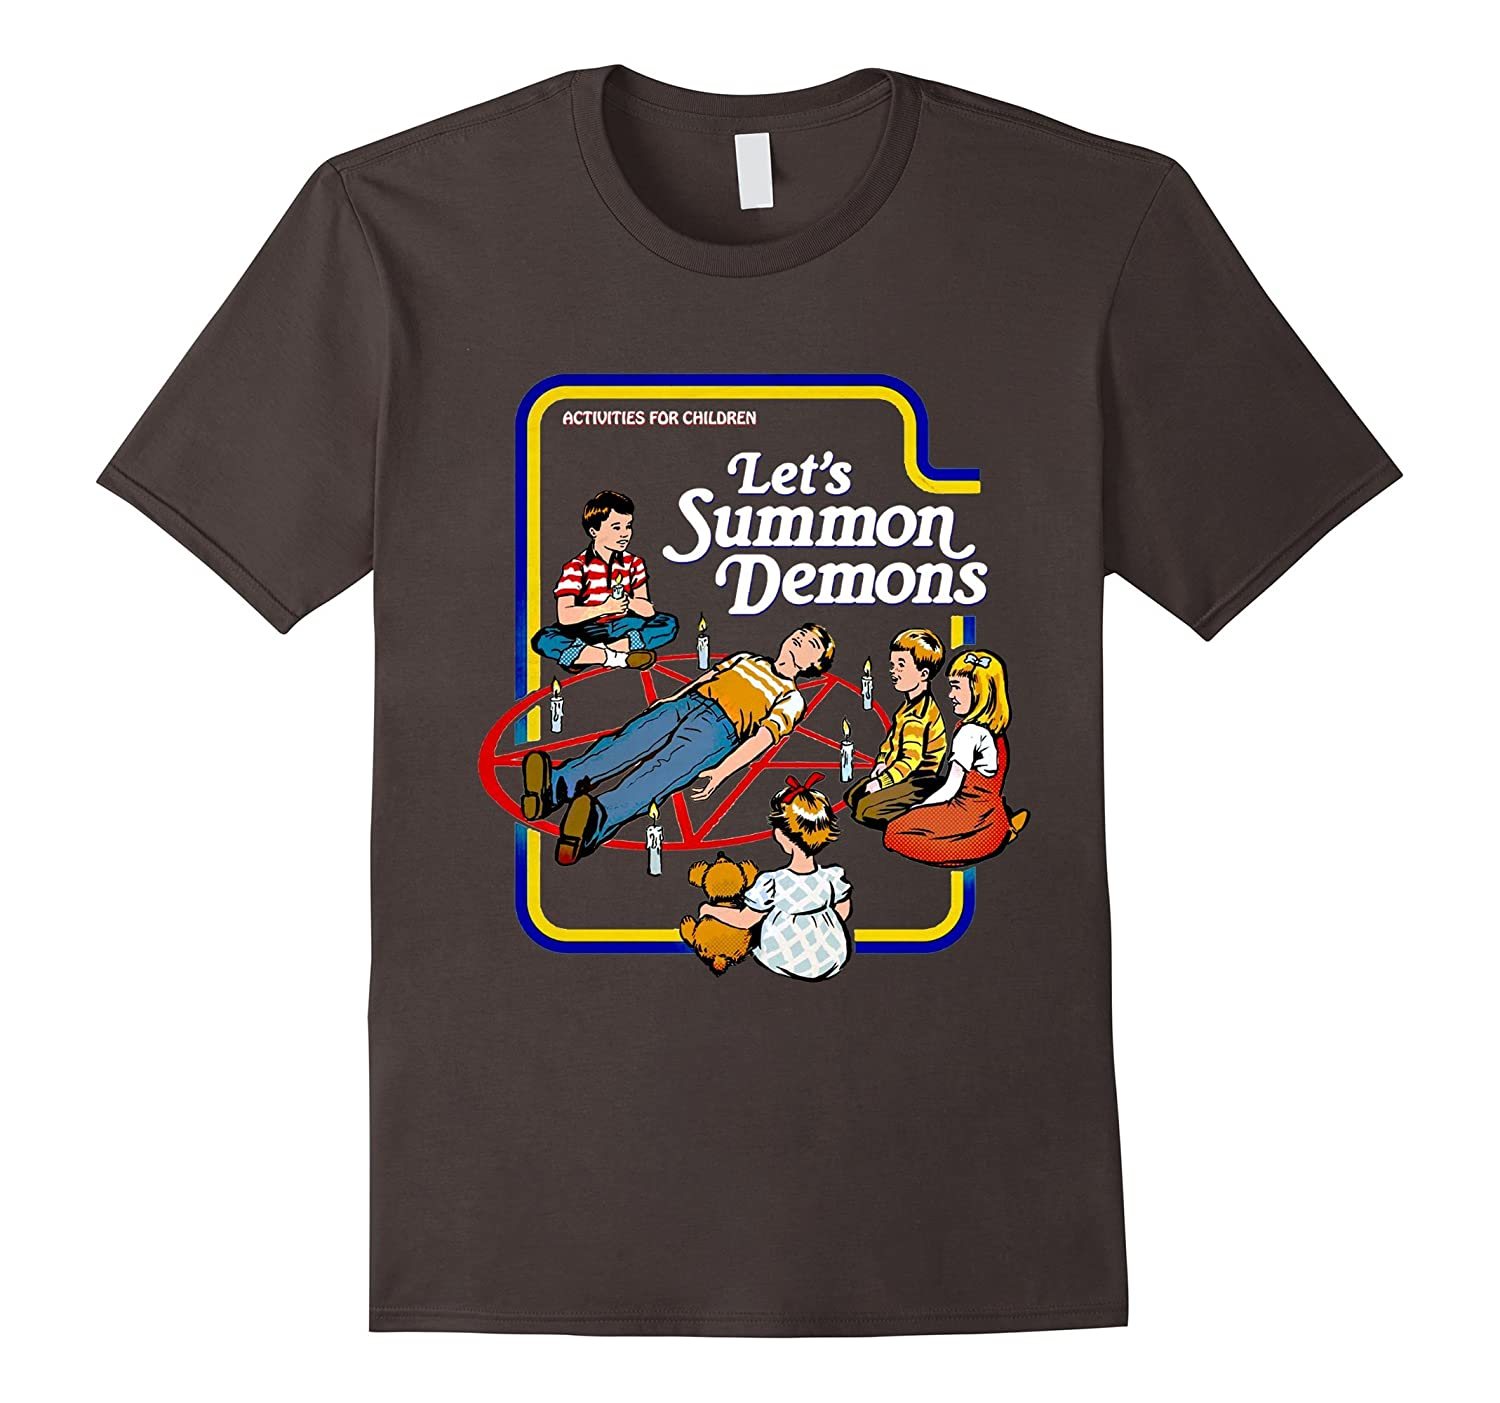 Let's Summon Demons T-Shirt